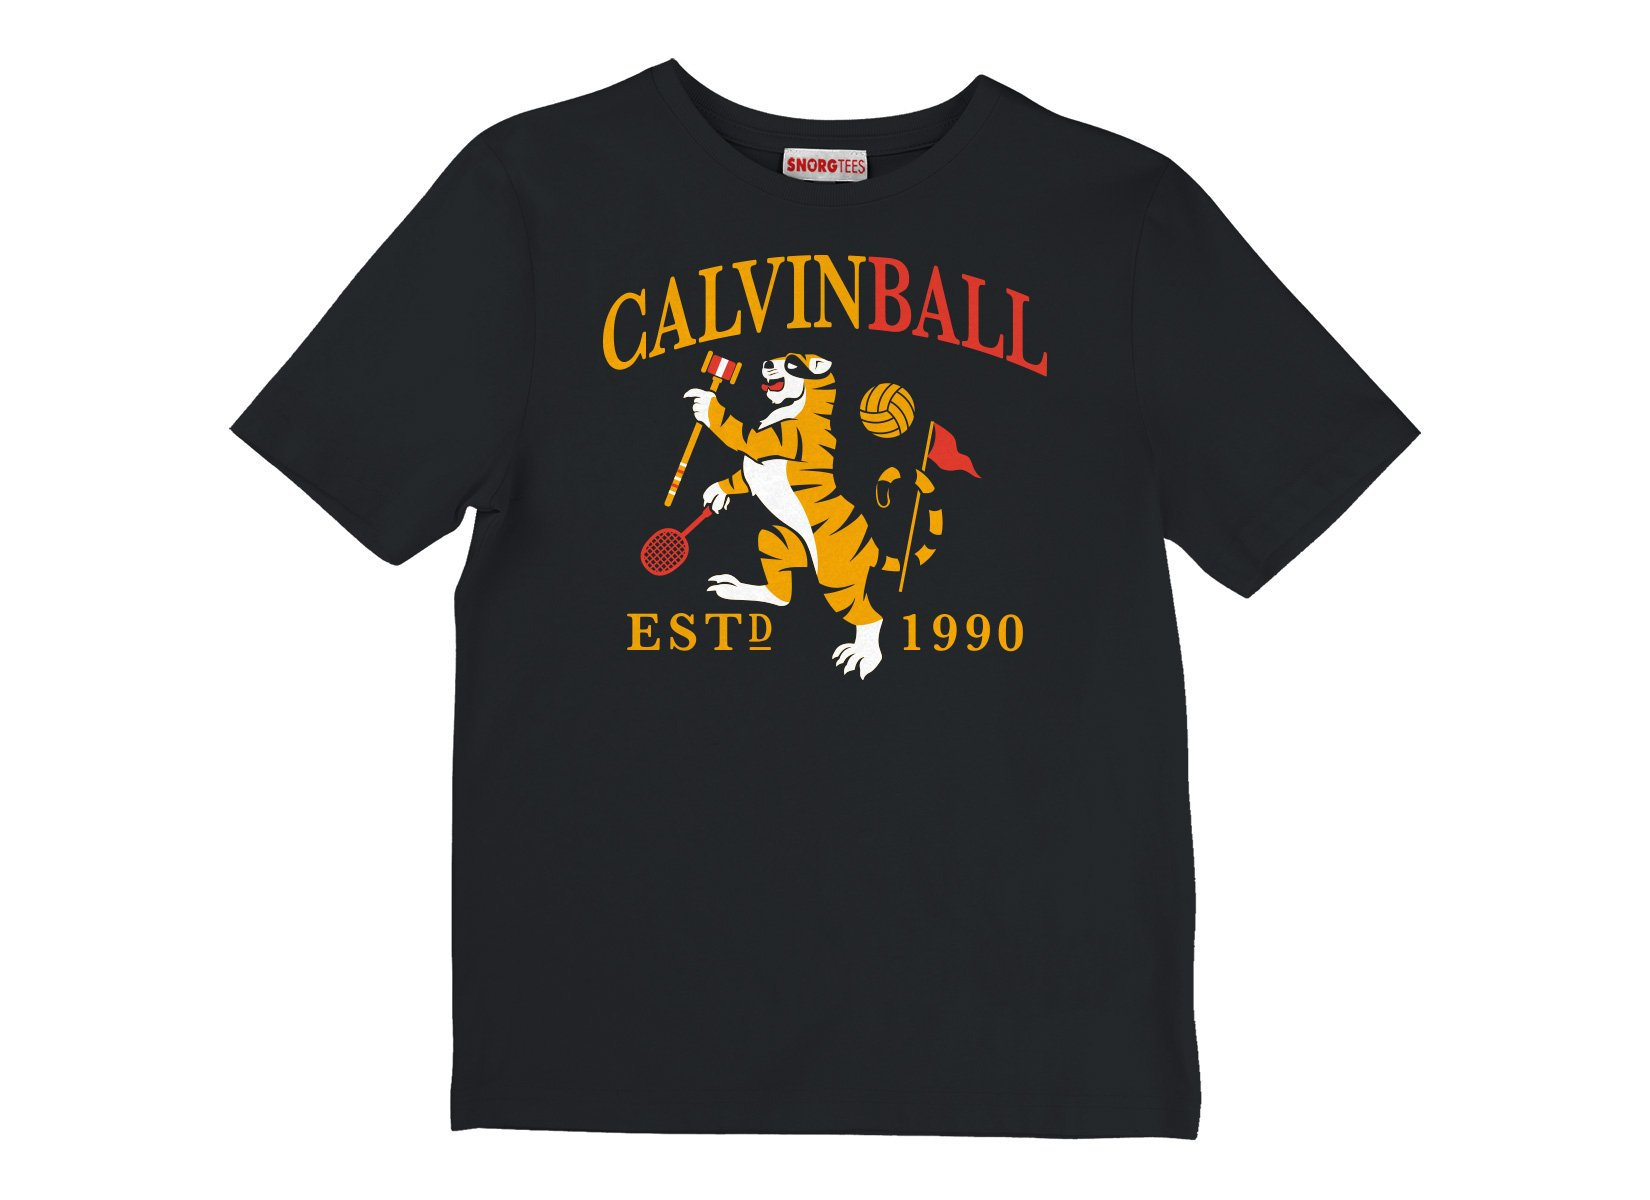 Calvinball on Kids T-Shirt